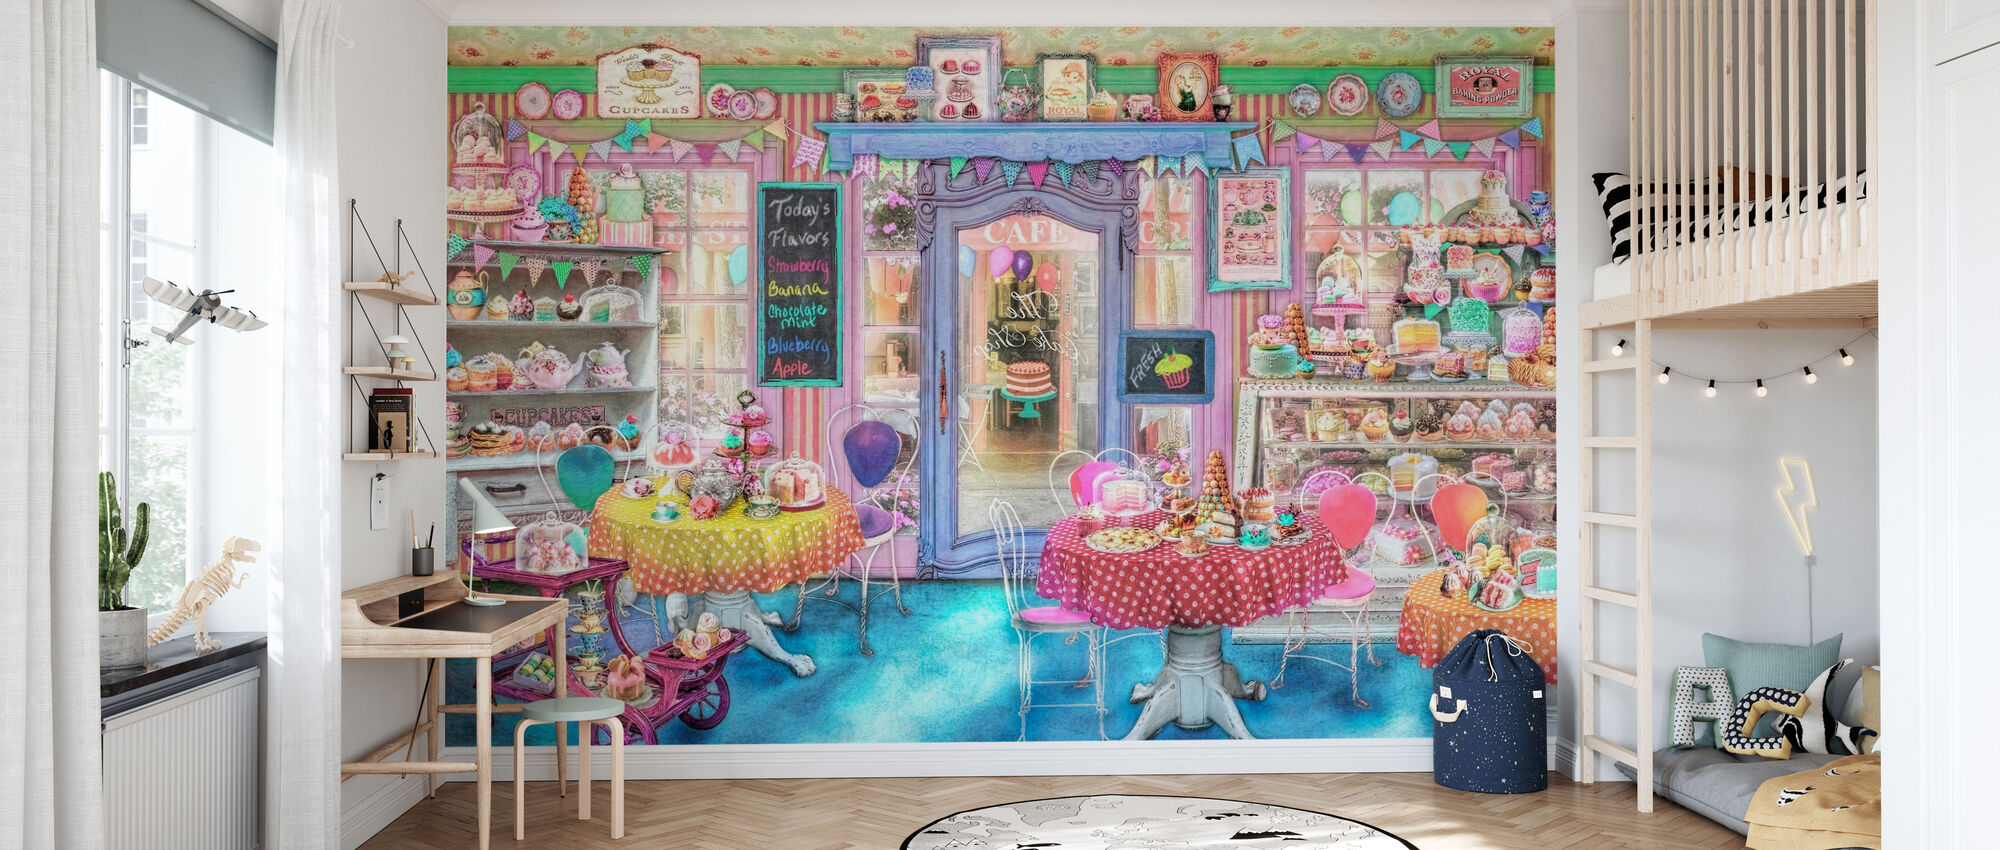 Vintage Cake Shop - Behang - Kinderkamer